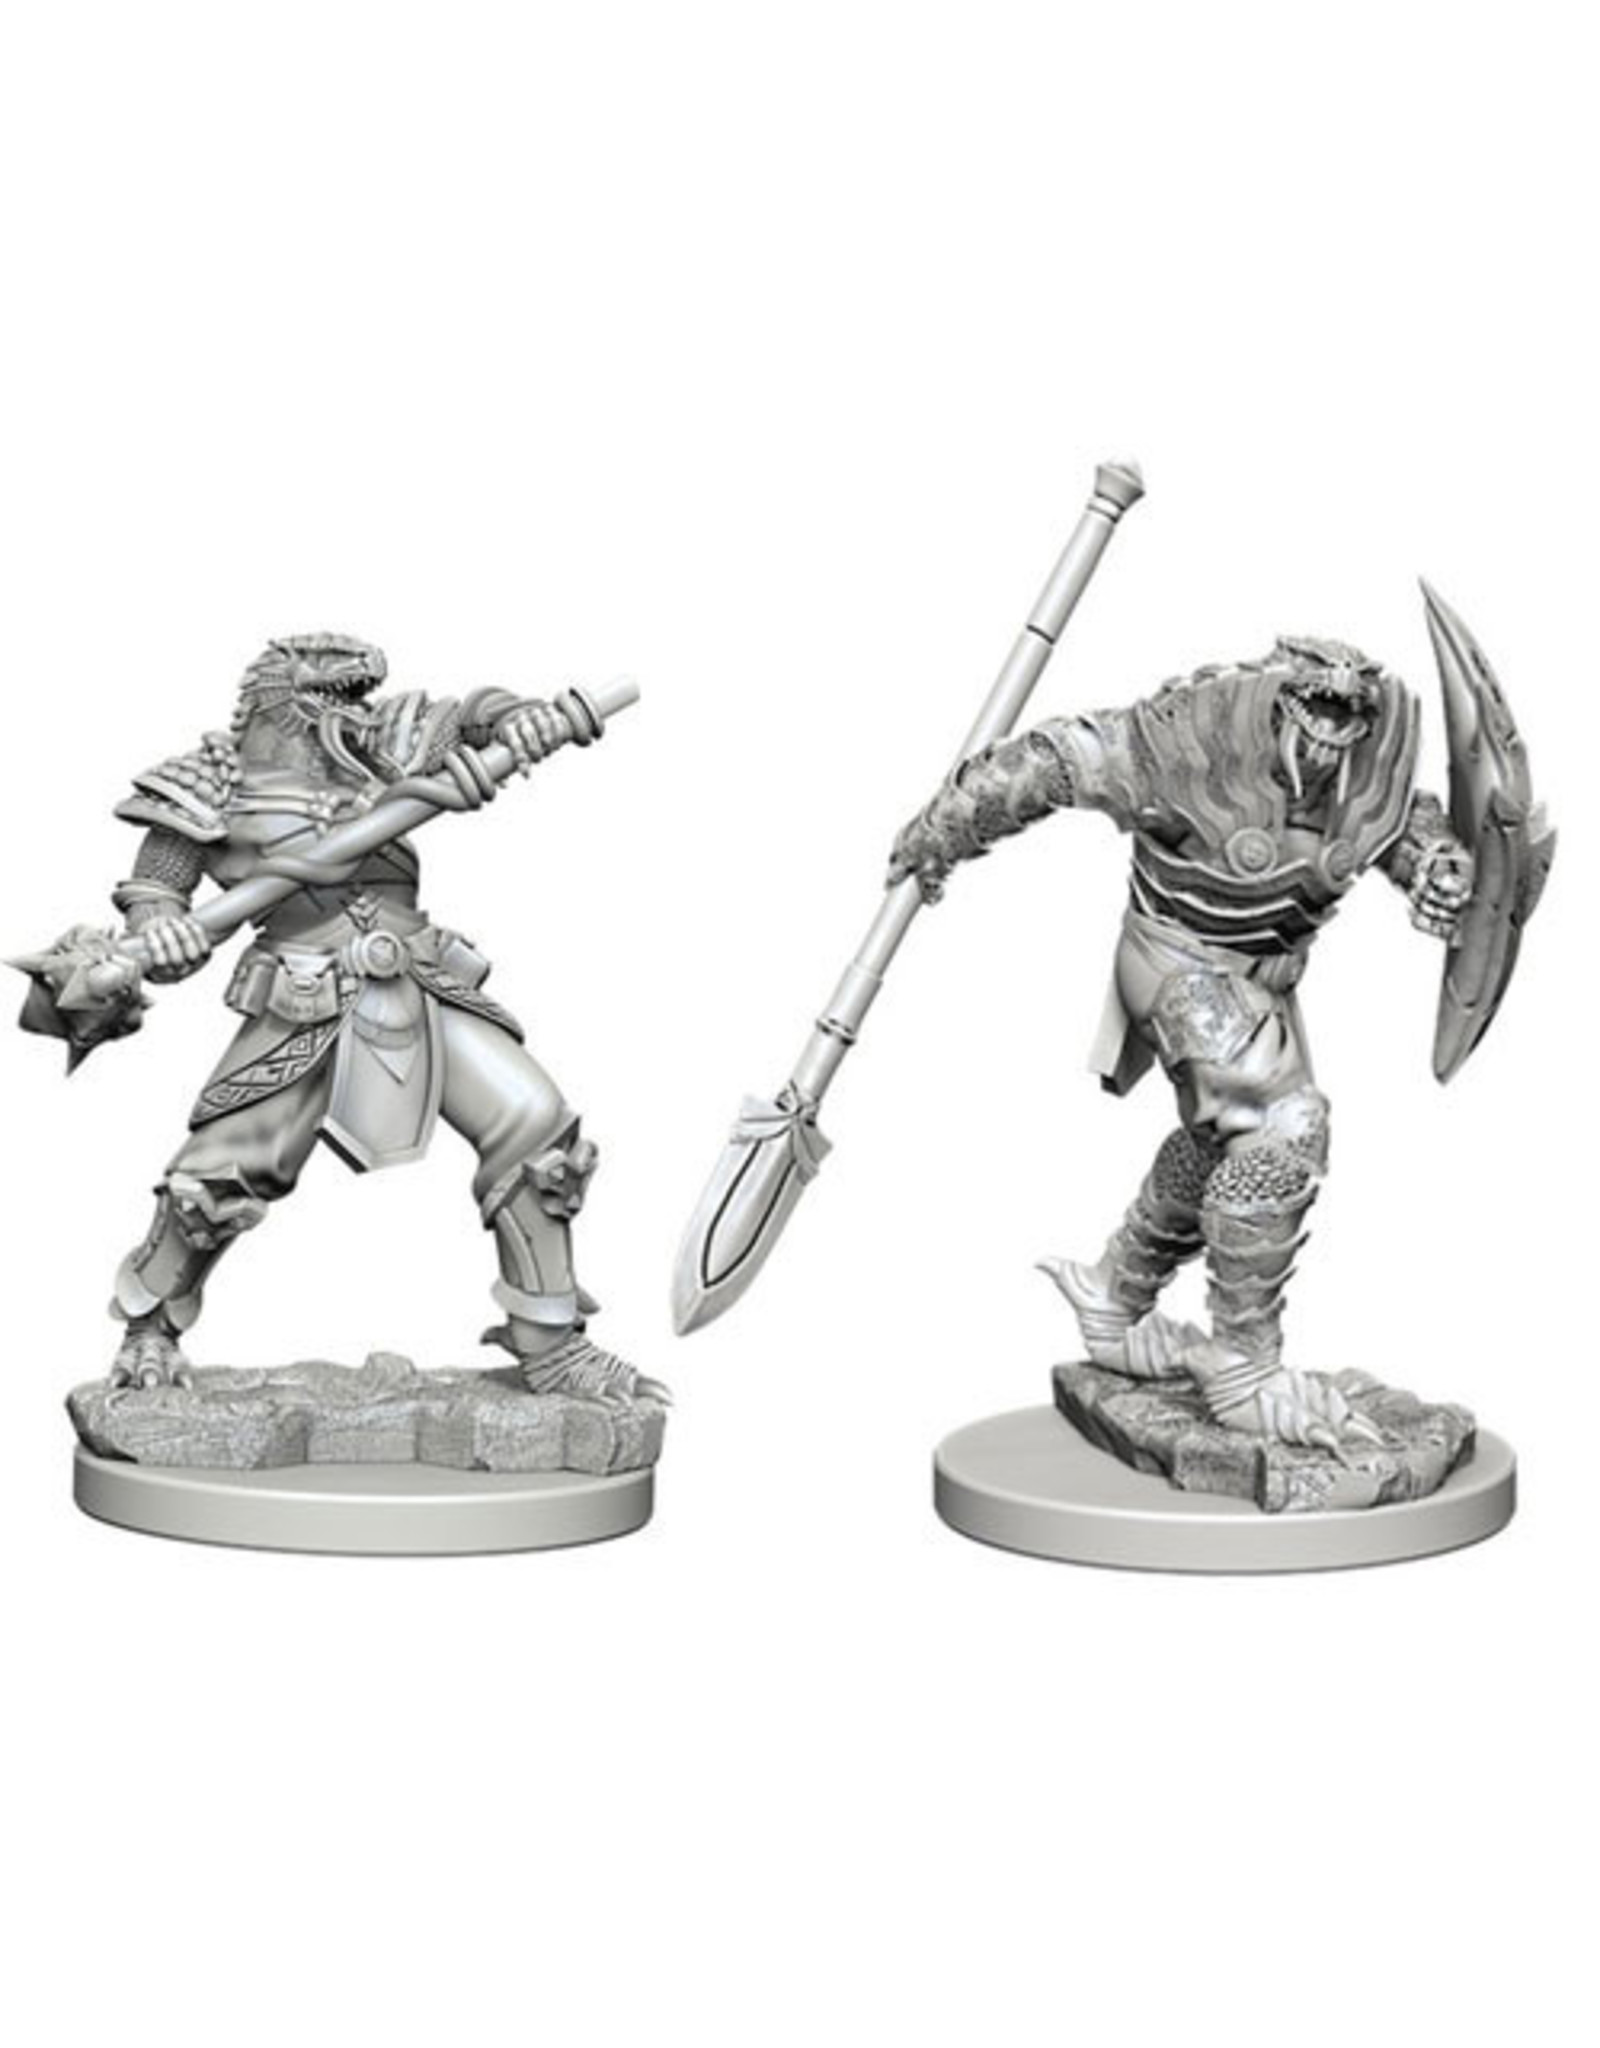 Dungeons & Dragons D&D NMU Dragonborn Male Fighter w/ Spear